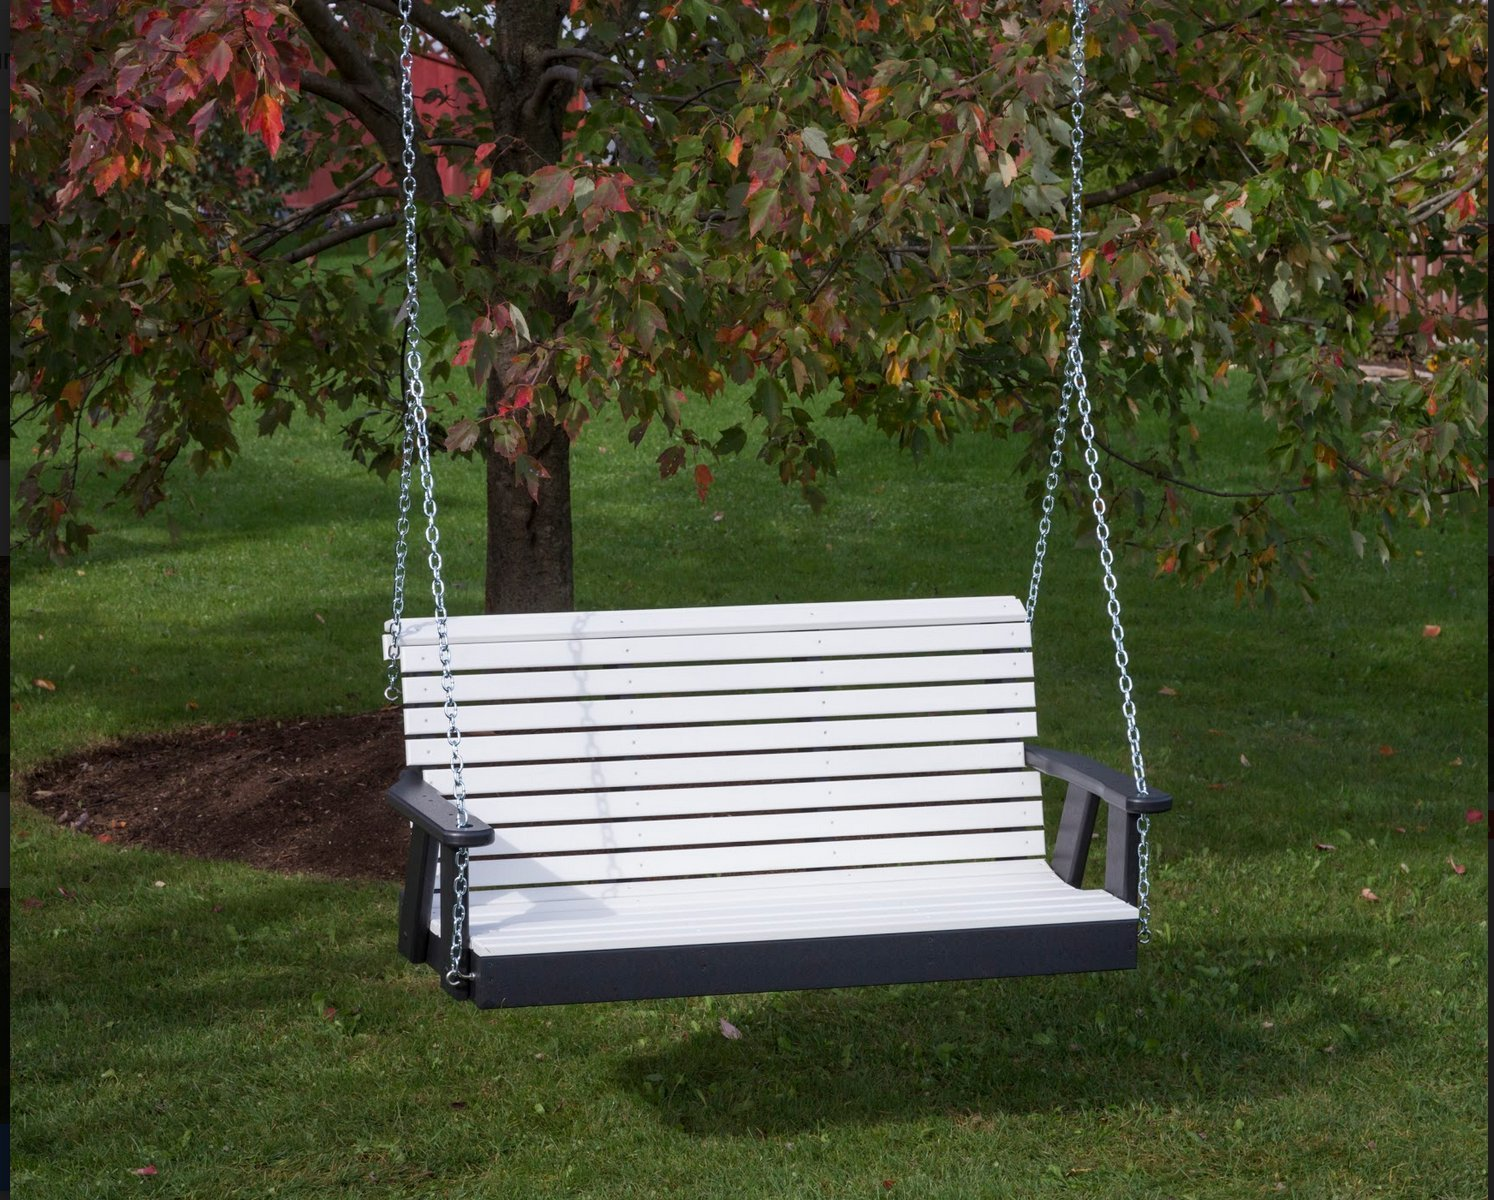 5FT-BRIGHT WHITE-POLY LUMBER ROLL BACK Porch Swing Heavy Duty EVERLASTING PolyTuf HDPE - MADE IN USA - AMISH CRAFTED